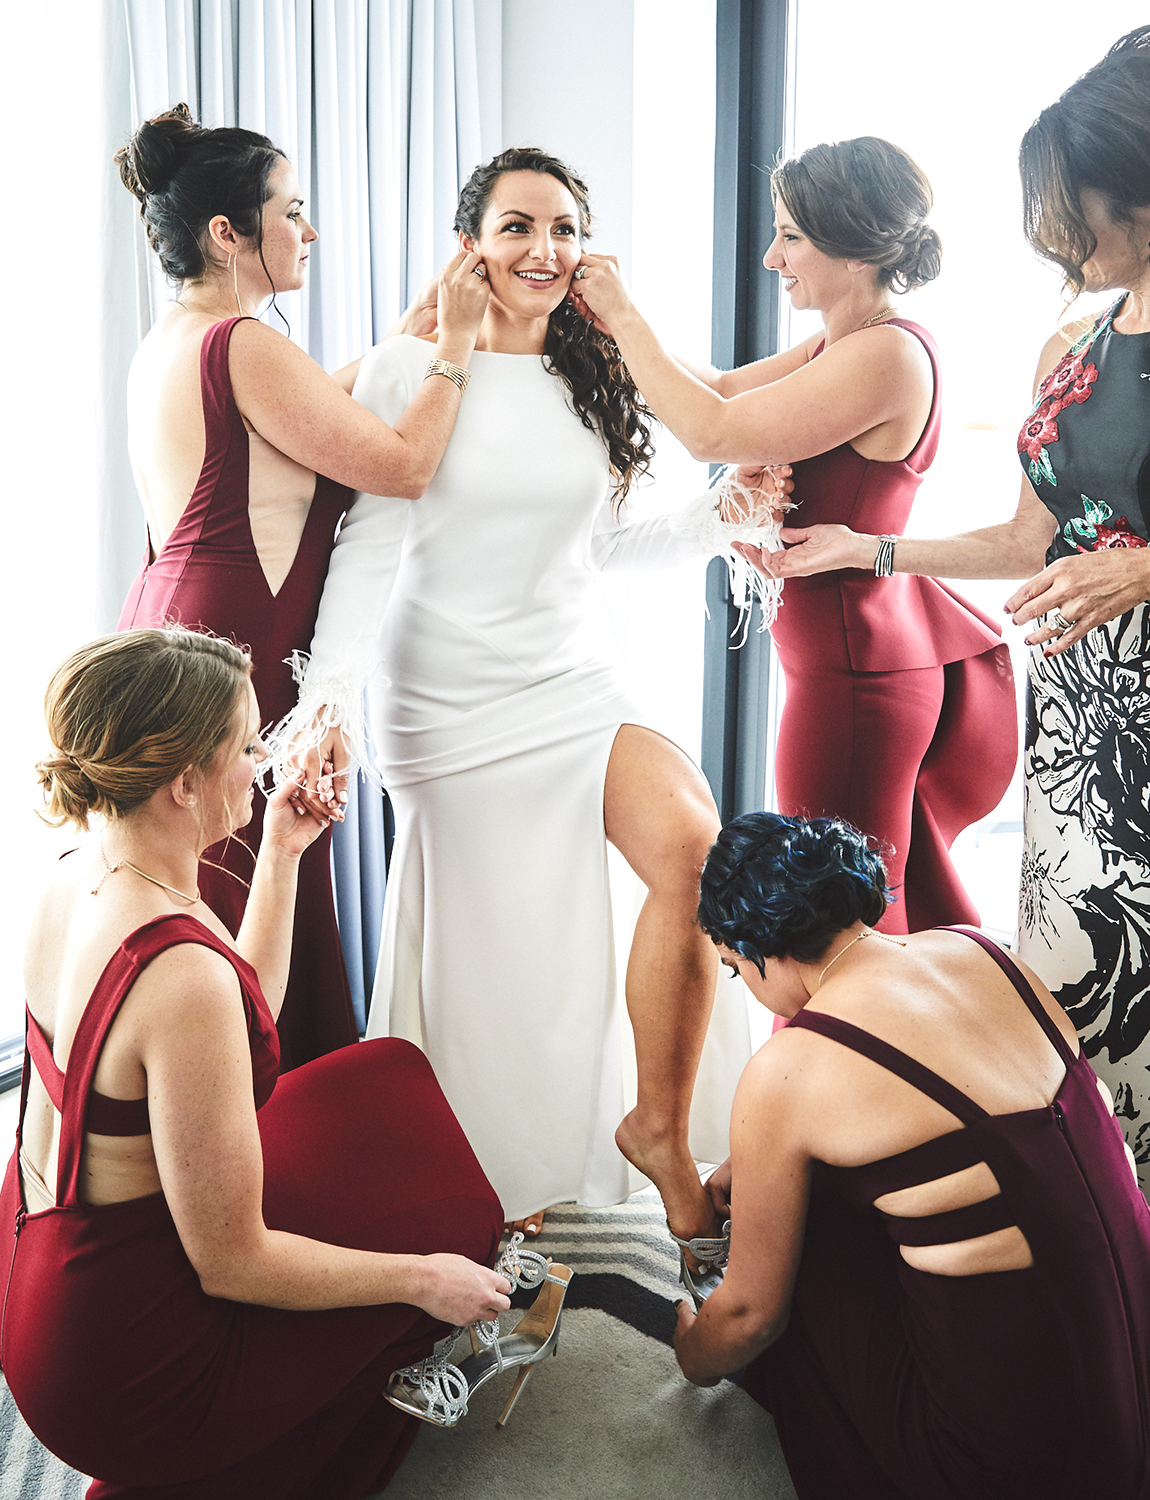 170930_WilliamValeWeddingPhotography_BrooklynWeddingPhotographer_By_BriJohnsonWeddings_0034.jpg